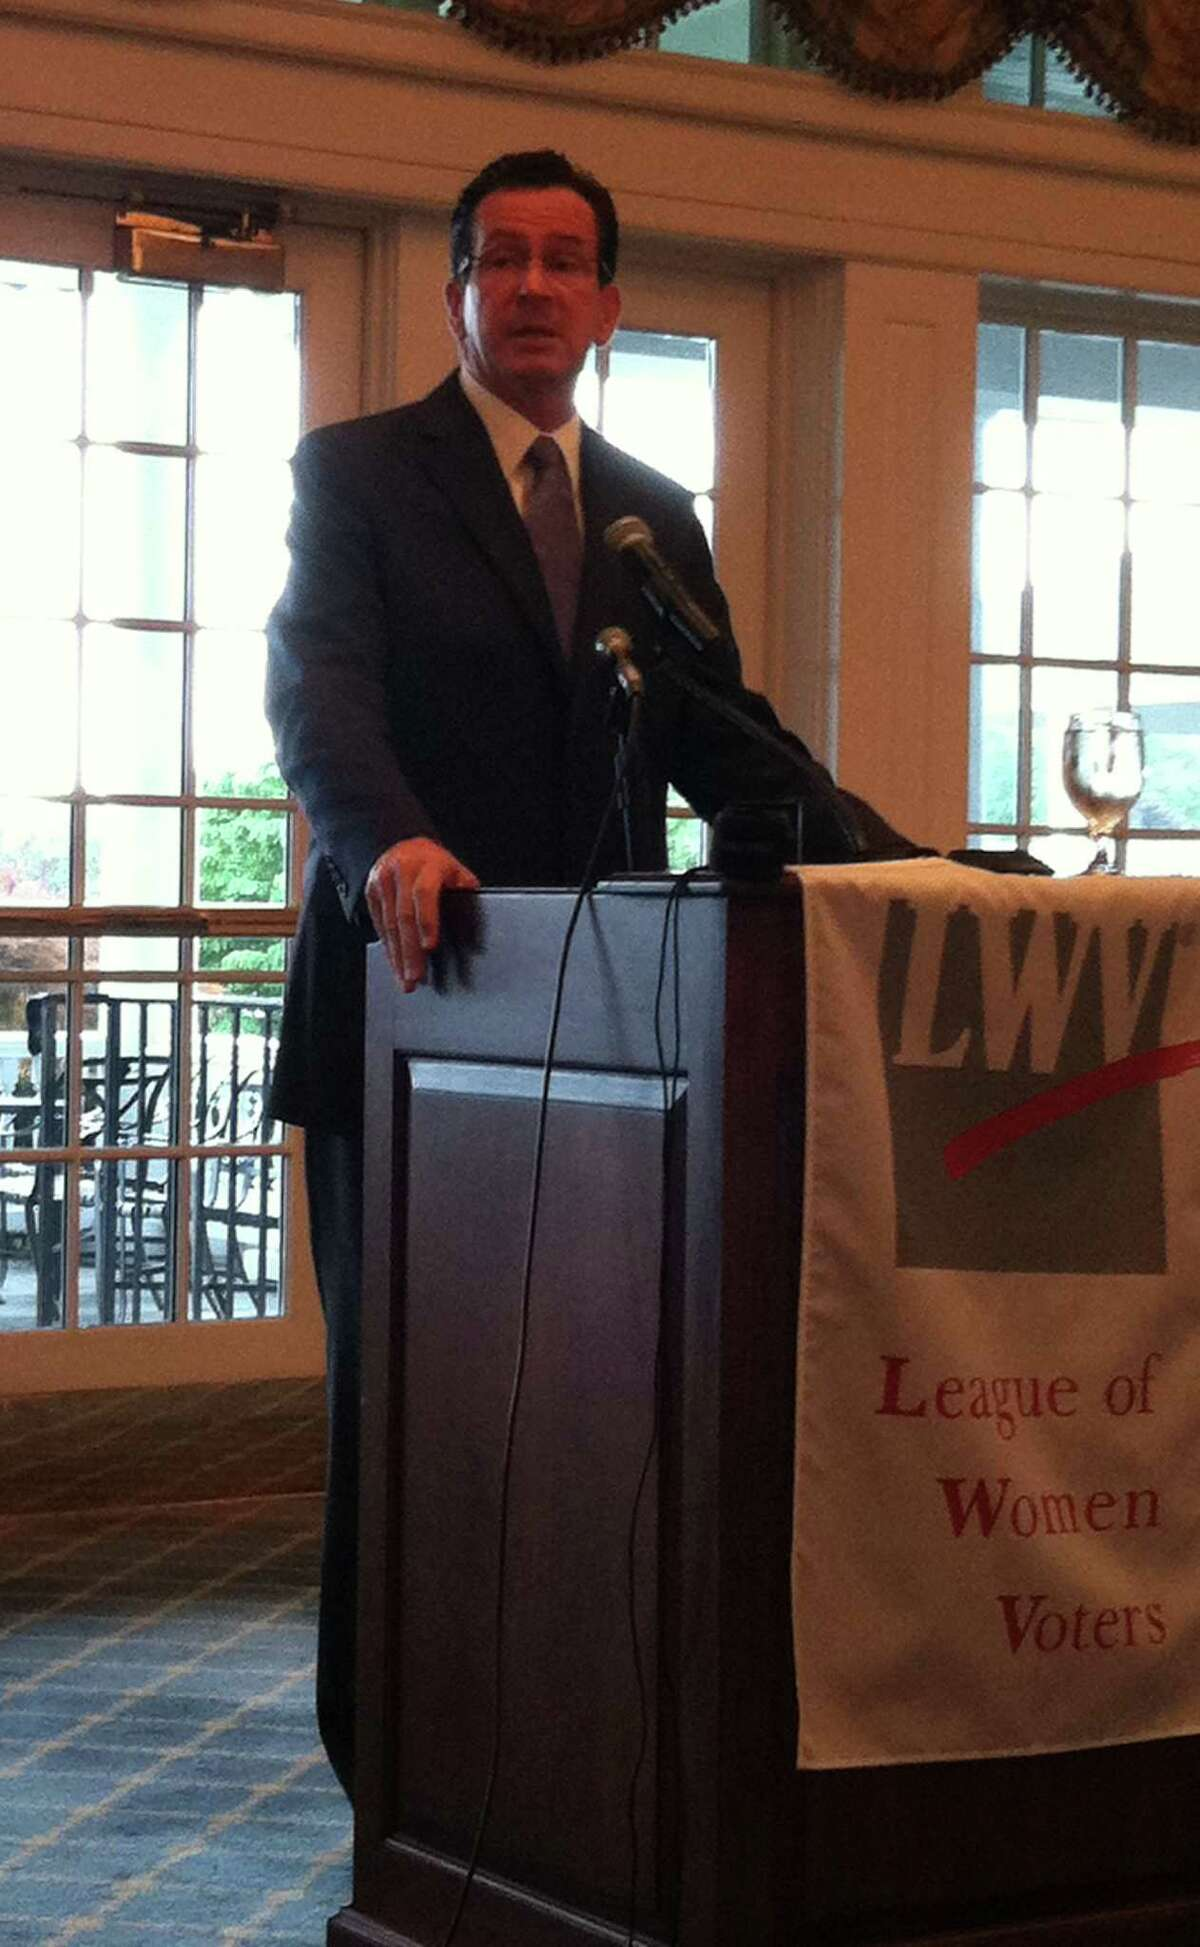 Gov. Dannel Malloy gives a speech about the importance of voting to the Darien League of Women Voters at their fall luncheon on Sept. 18. Sept. 18, 2012.